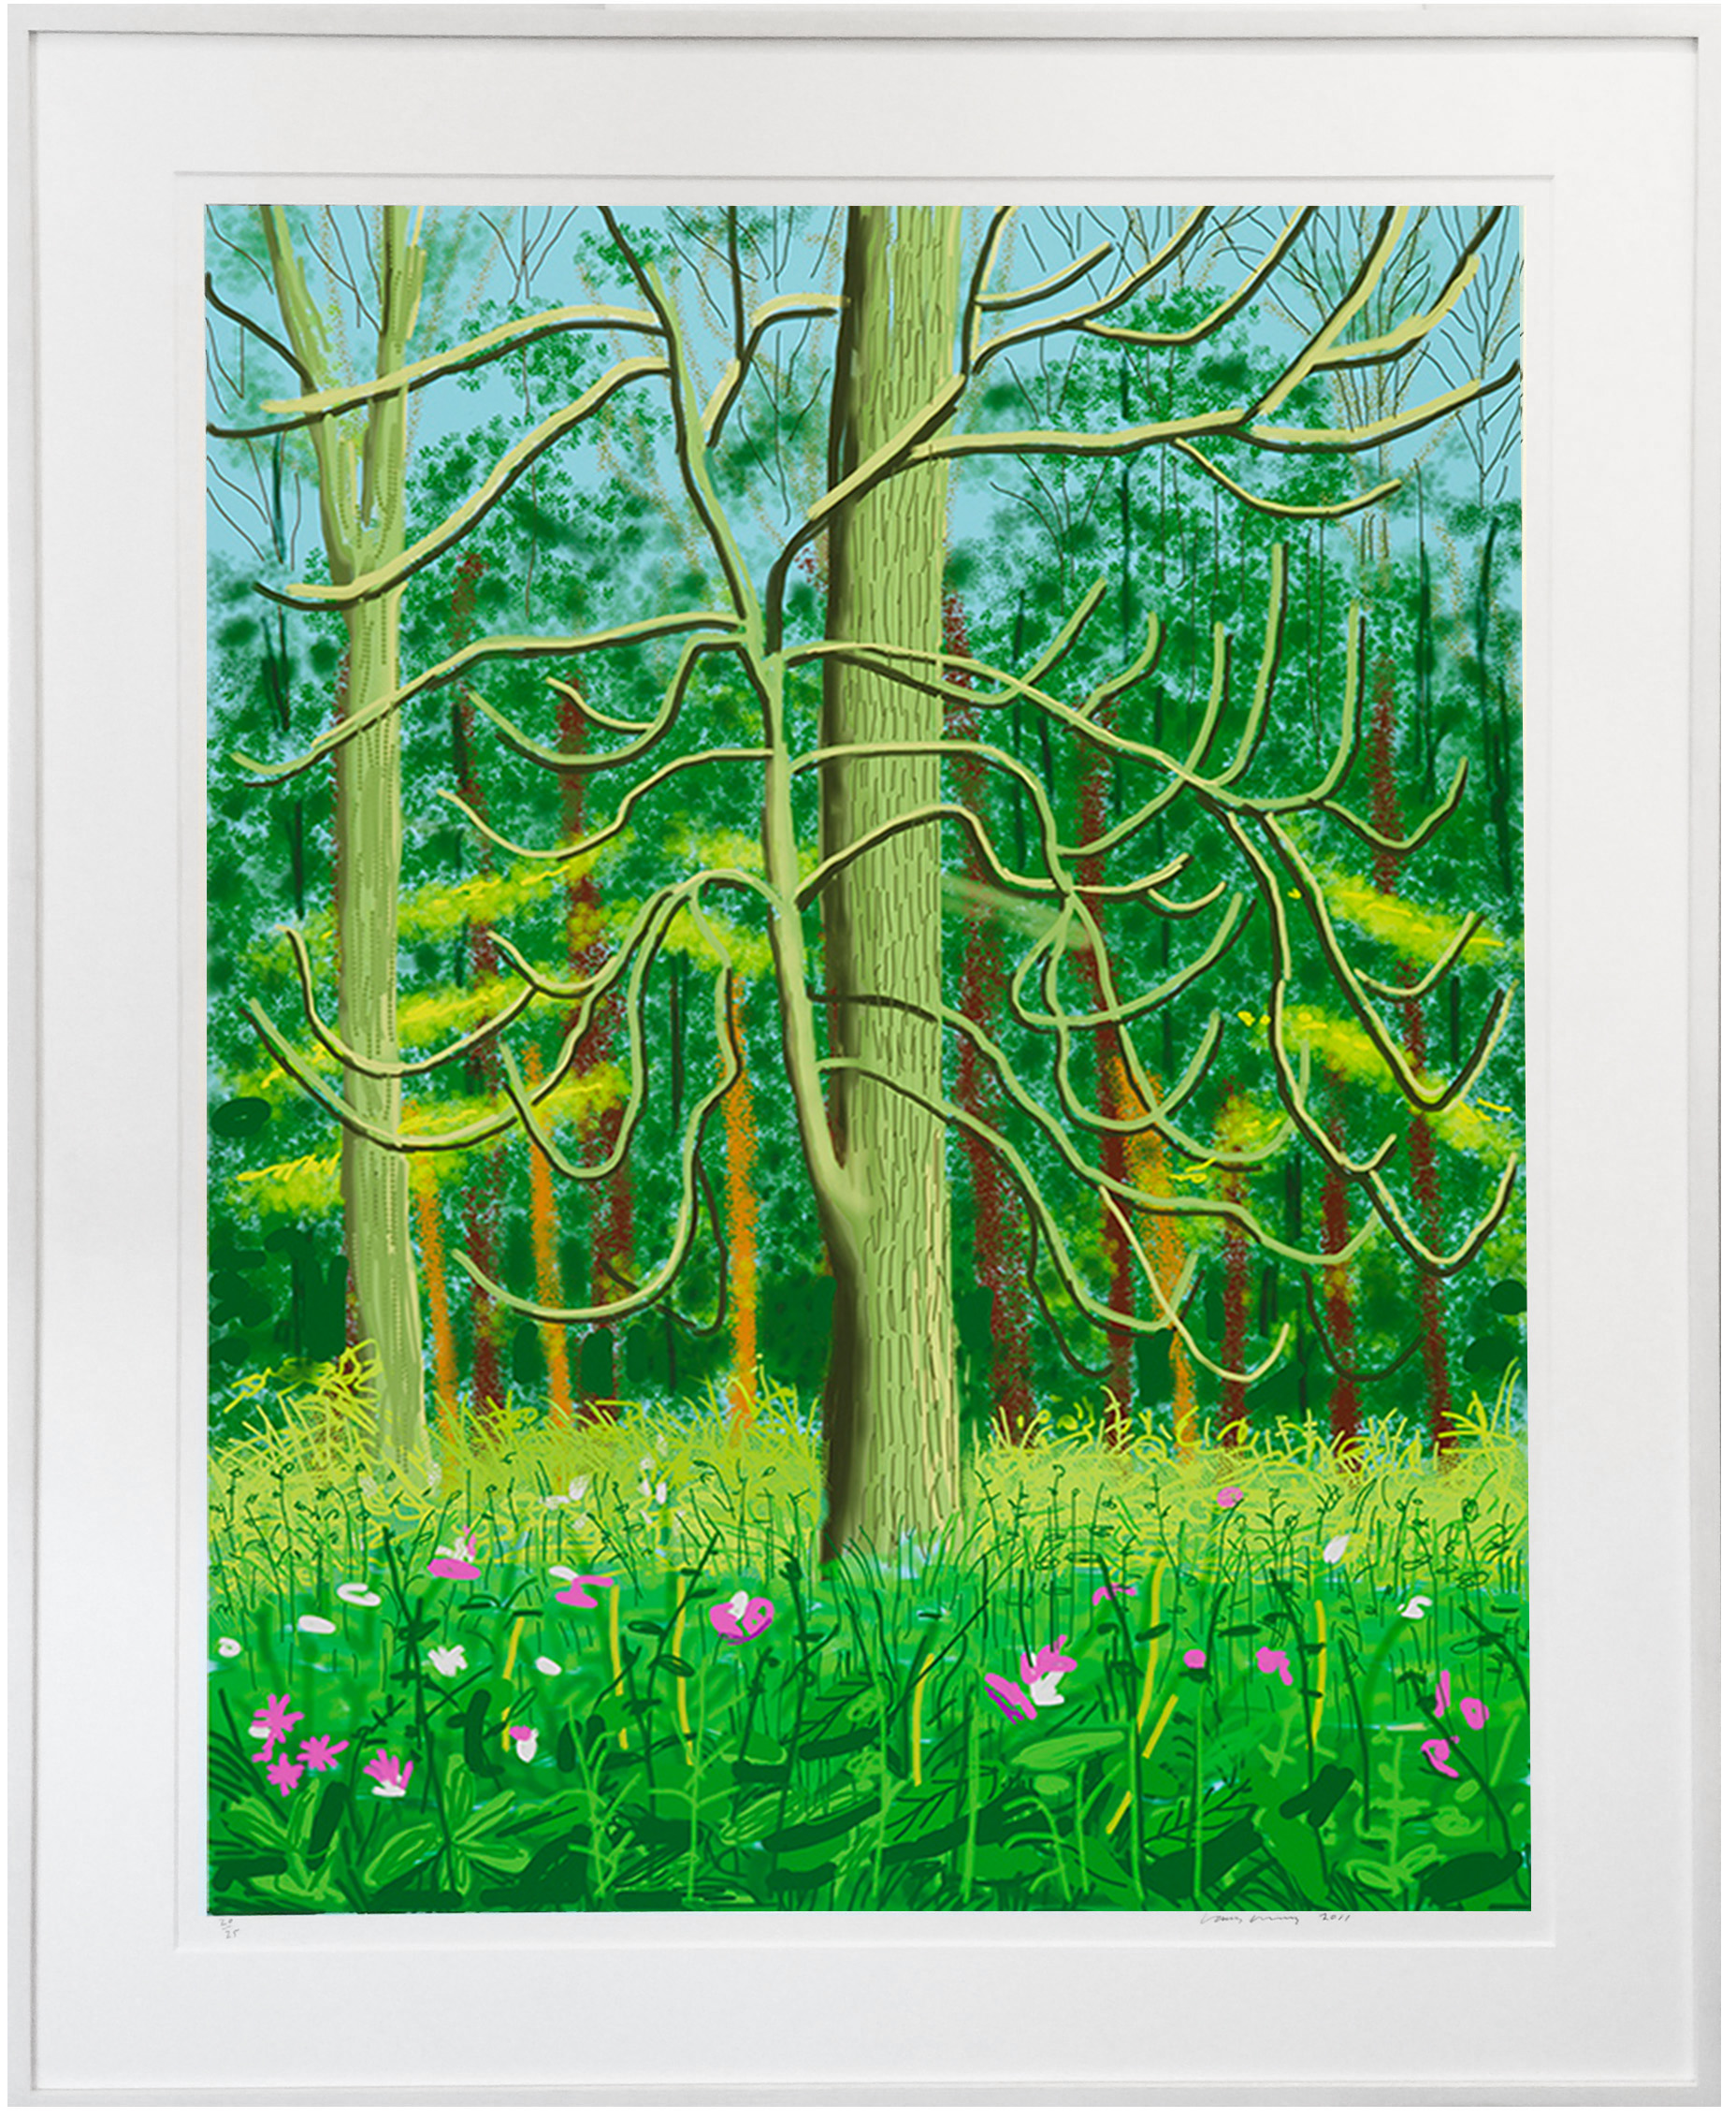 iPad drawing of the English countryside by David Hockney